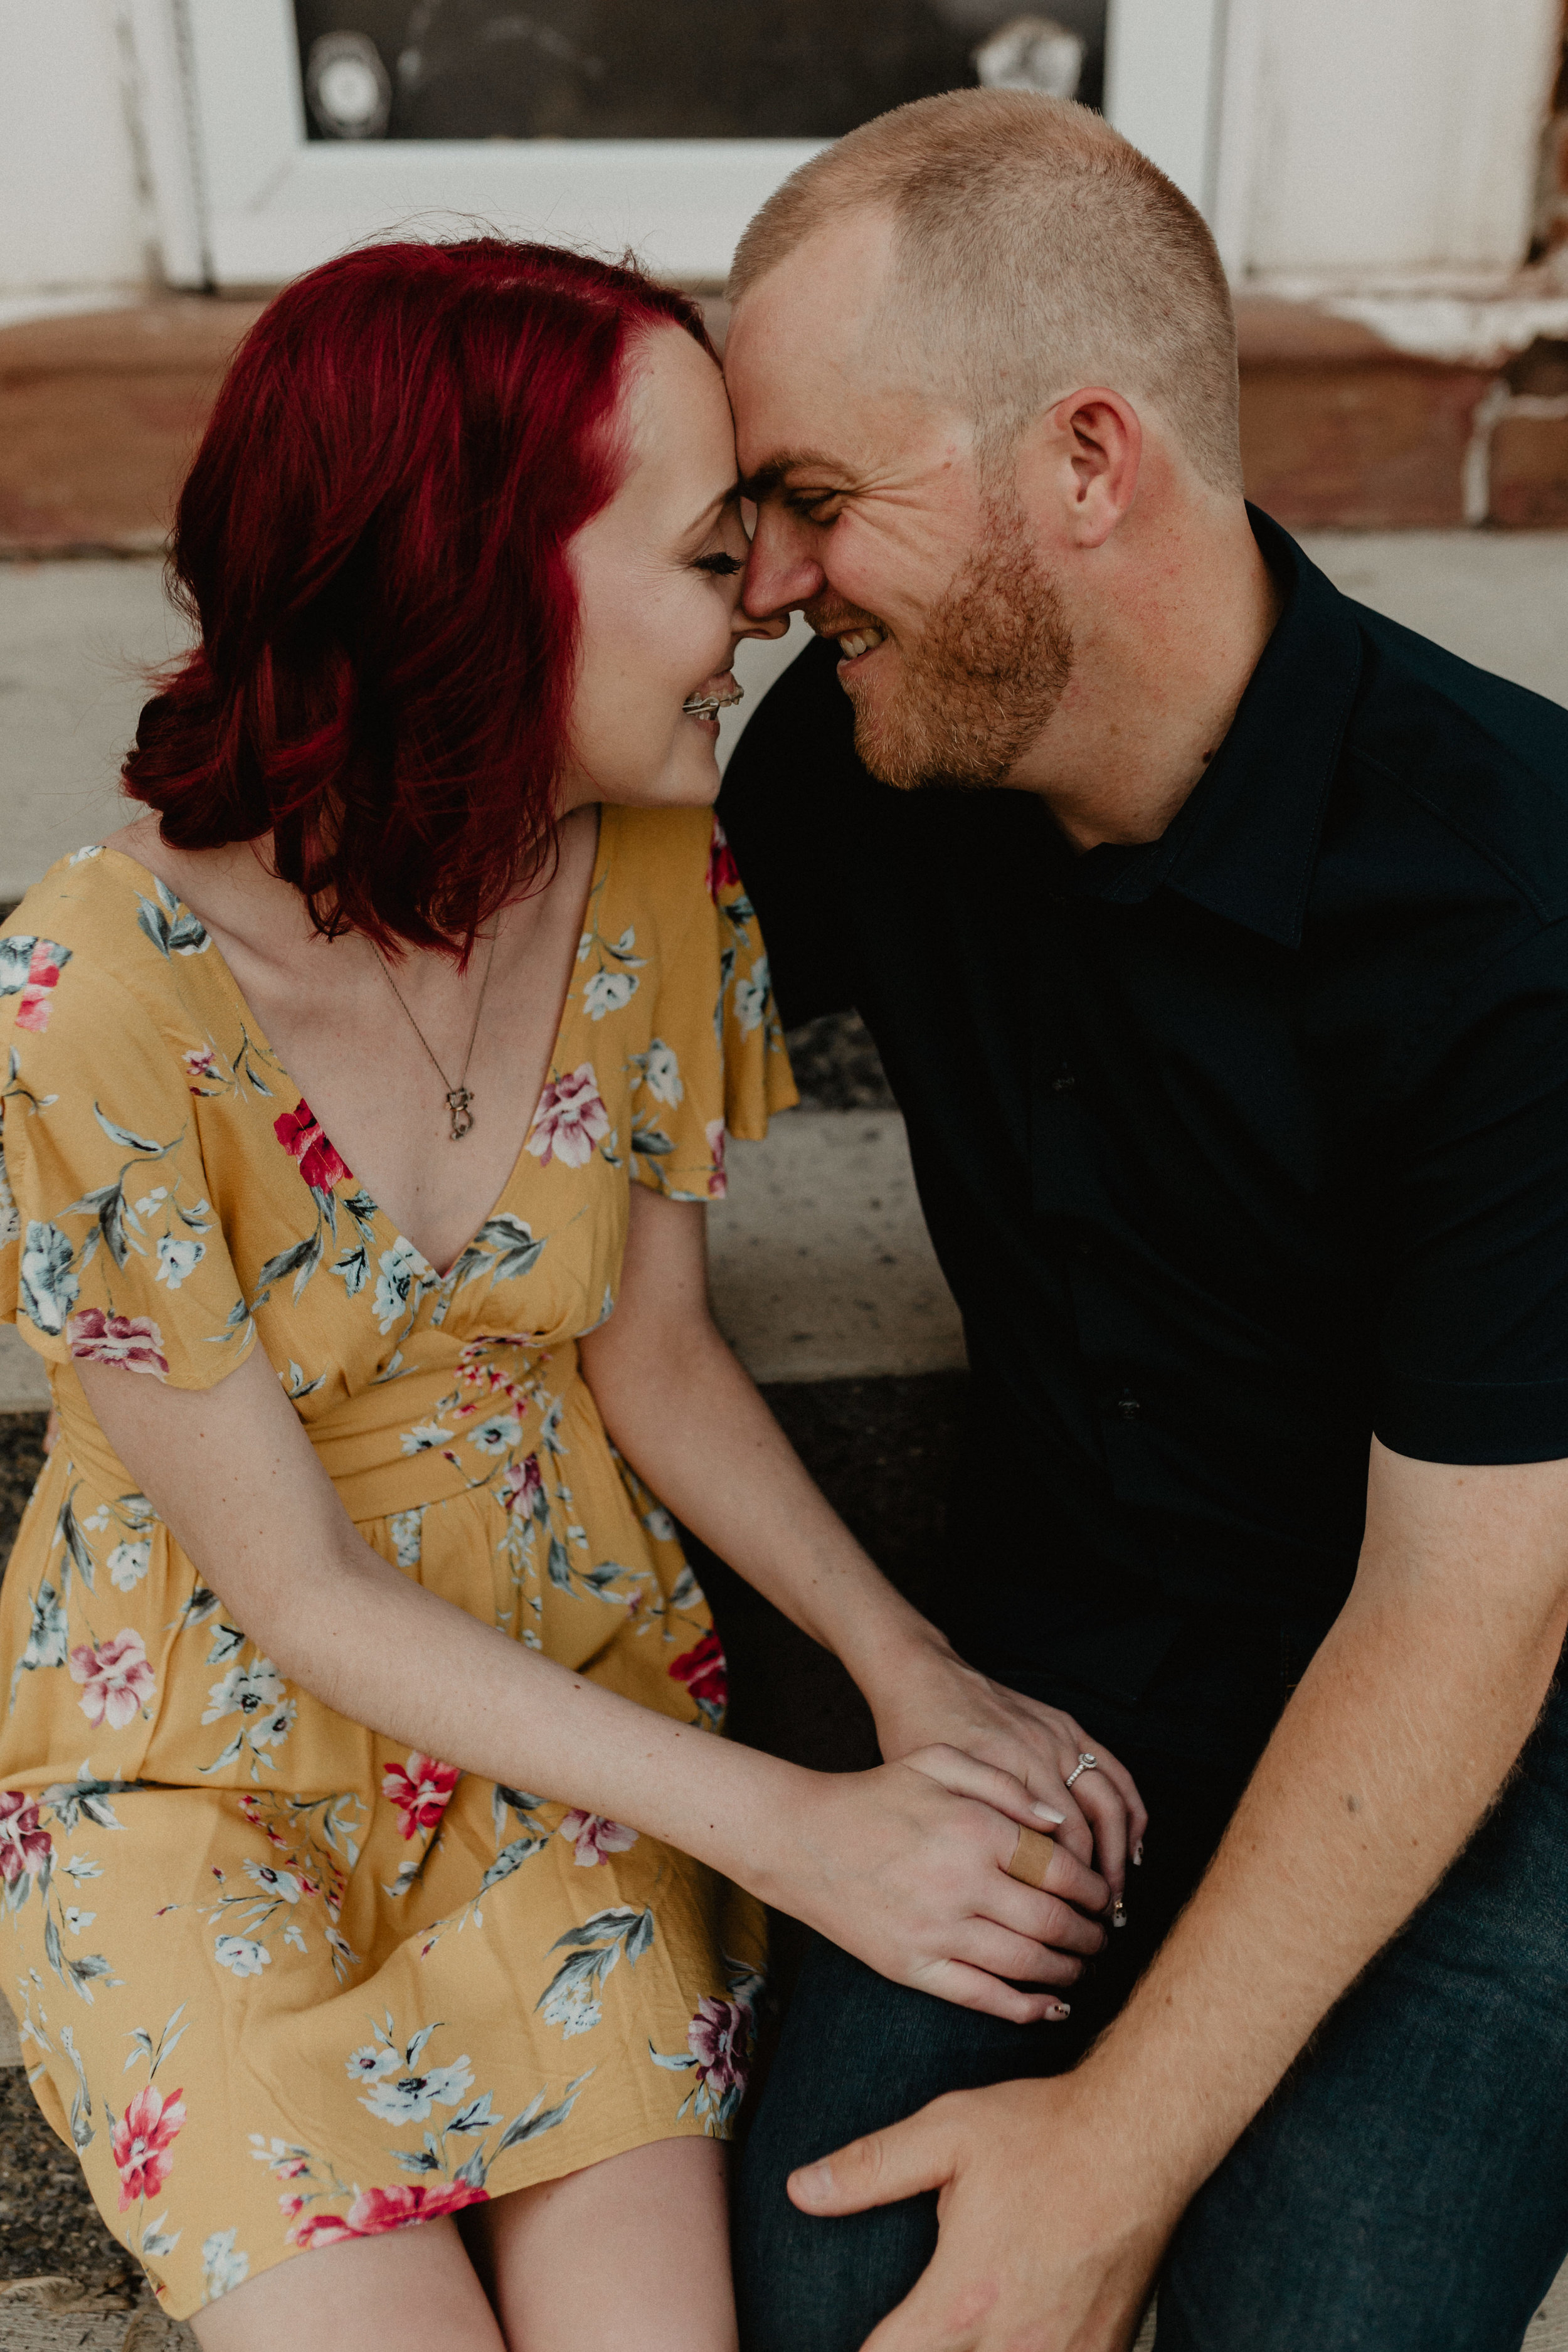 downtown-troy-engagement-session-9.jpg